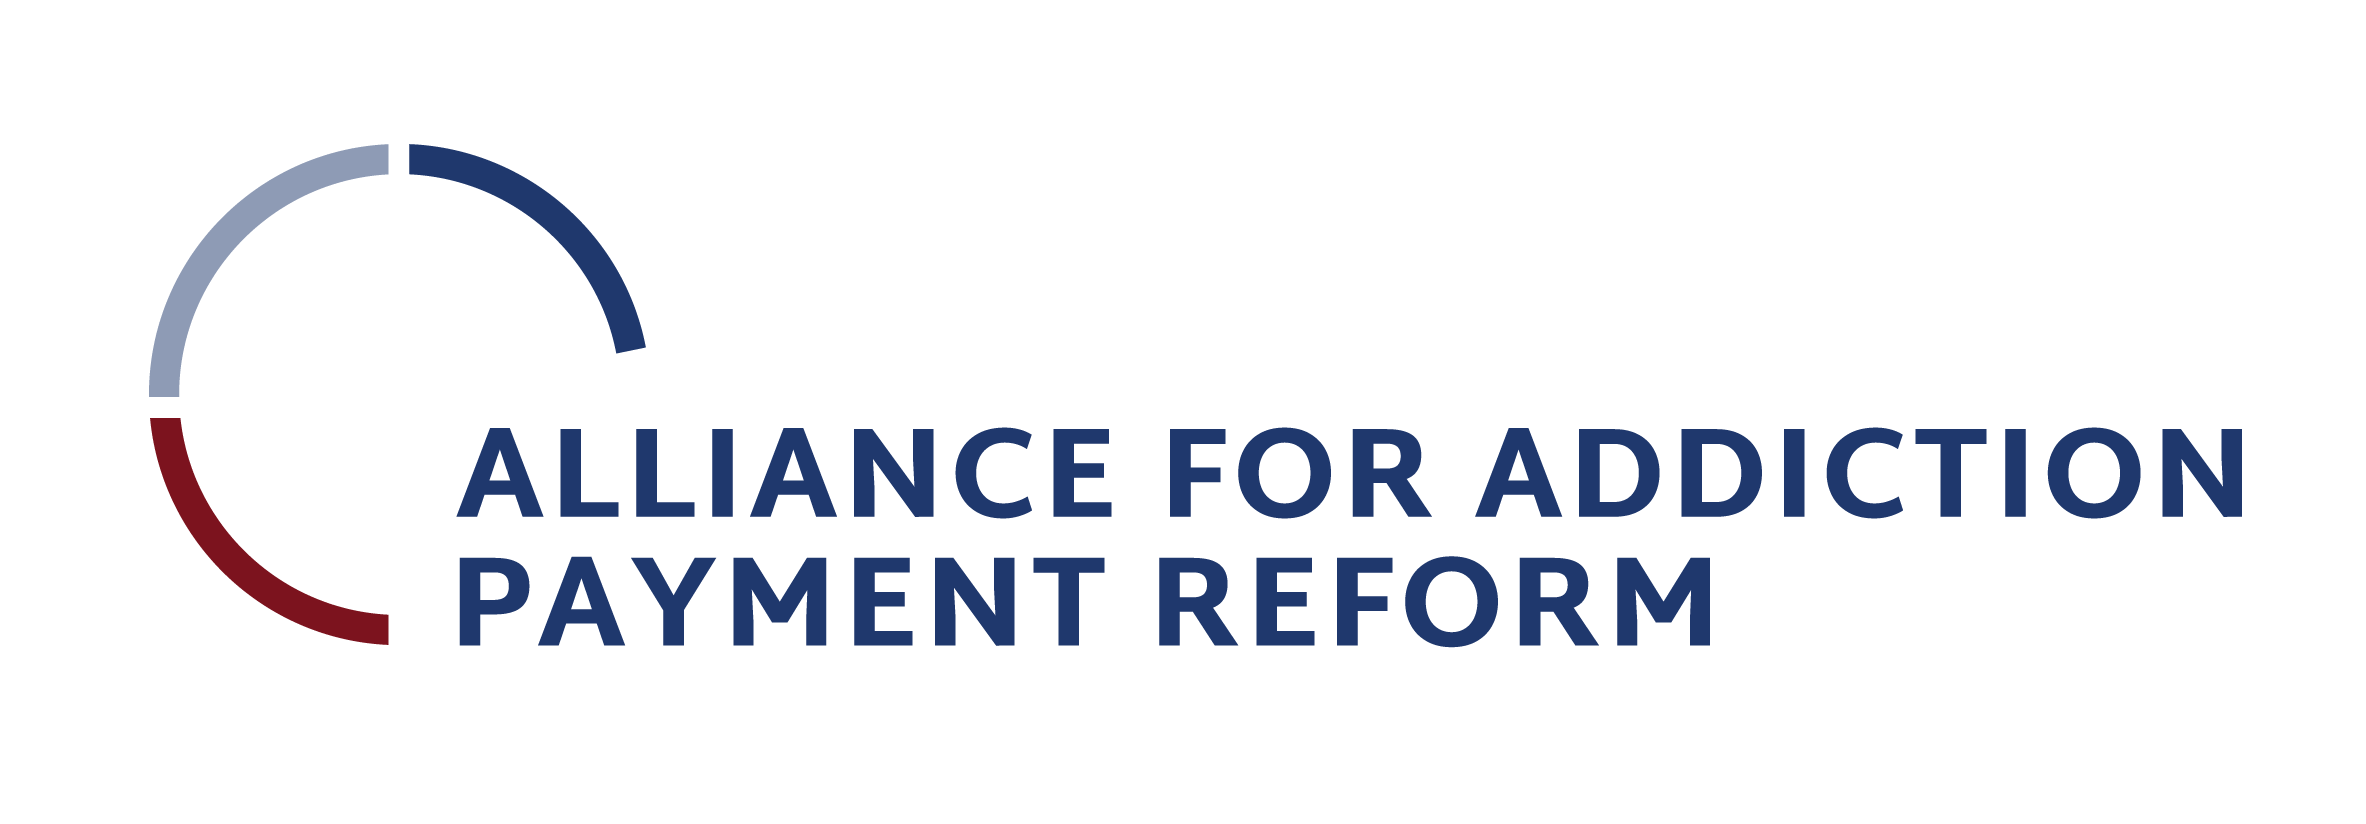 The Alliance for Addiction Payment Reform